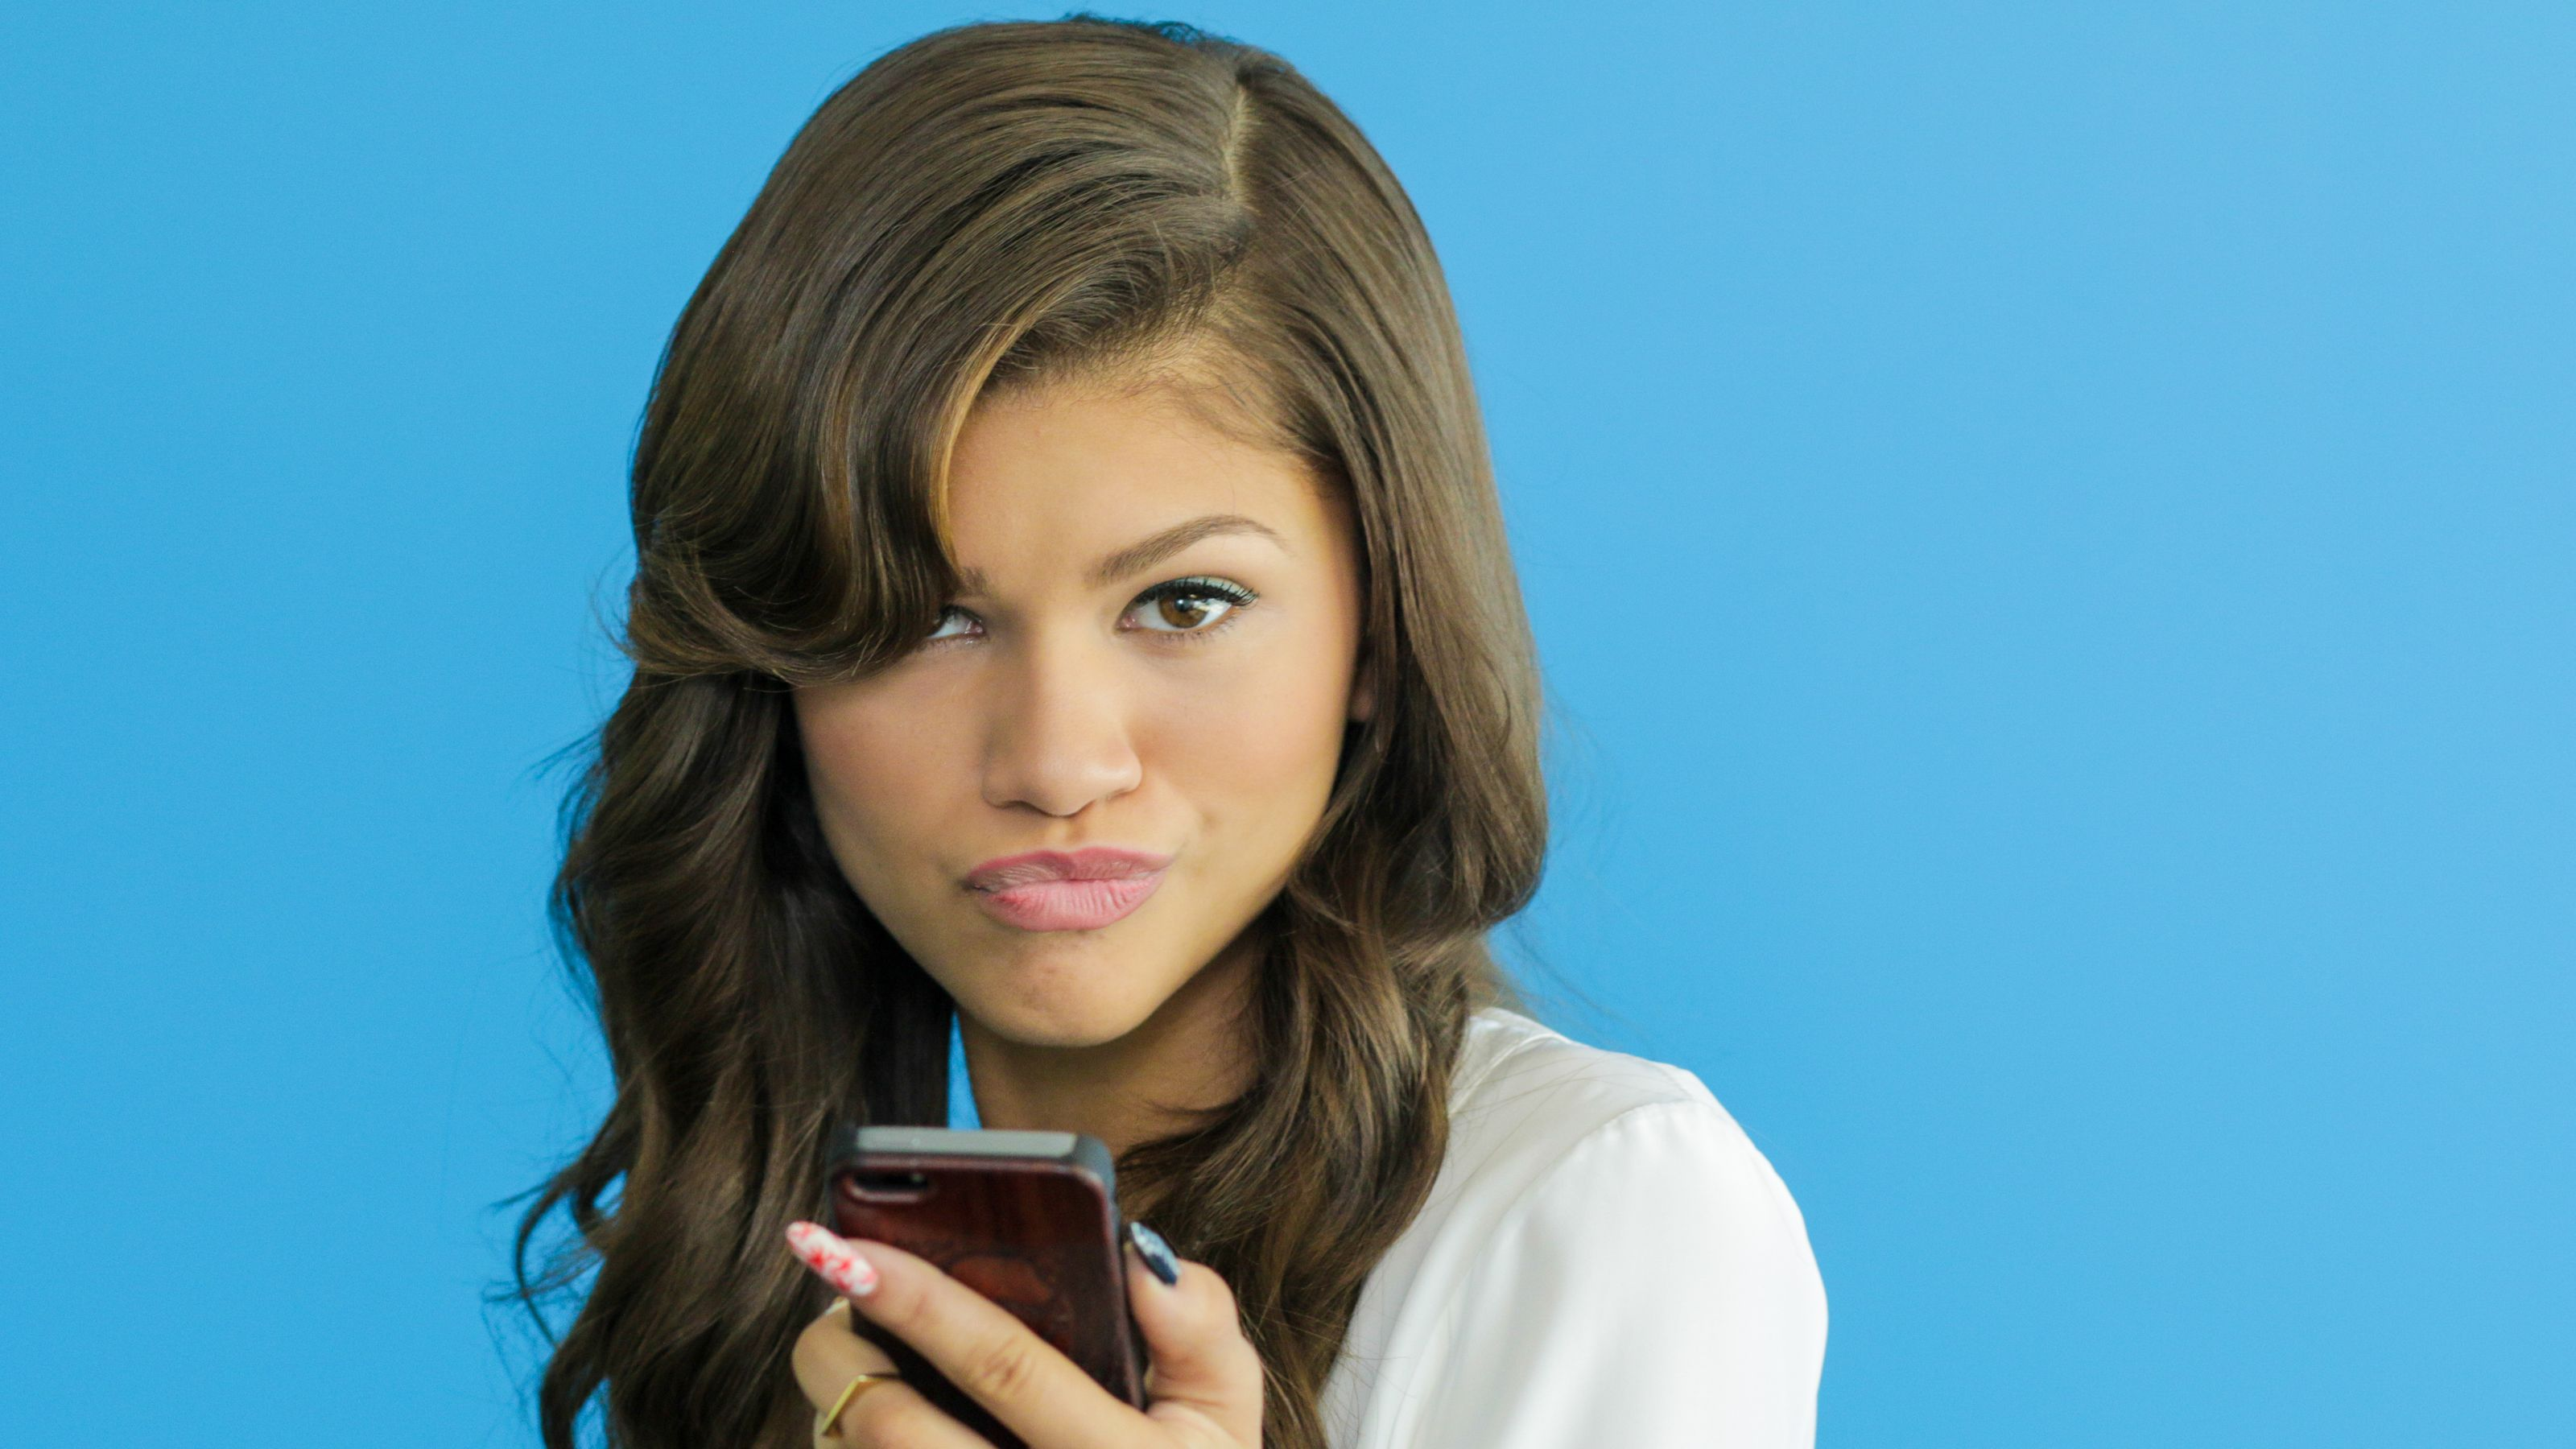 Amazing Zendaya Wallpaper Full Hd Pictures Zendaya Phone Wallpaper Desktop Wallpaper